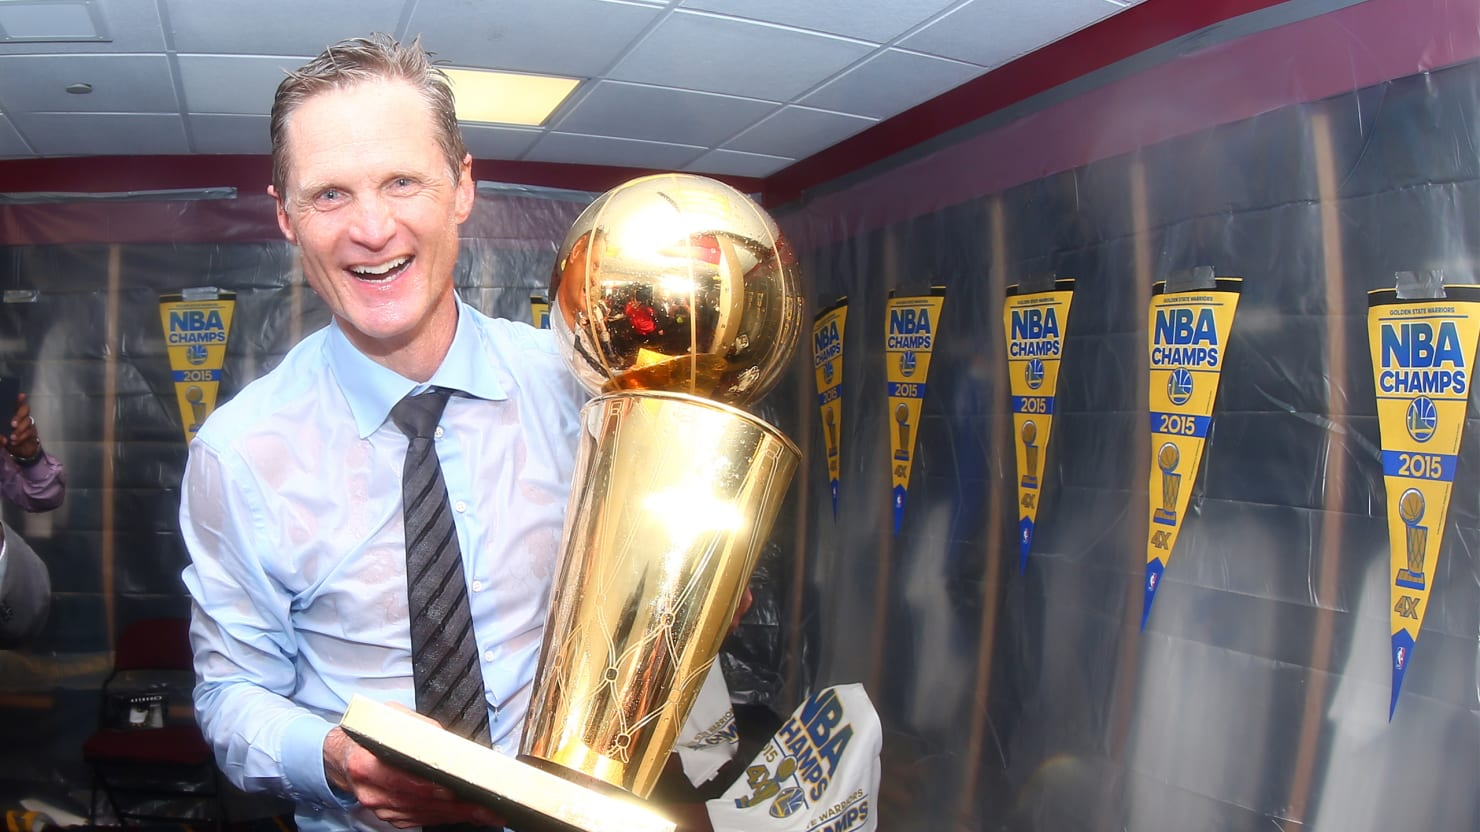 Steve Kerr, the Risk-Taking General Who Led the Warriors to Victory